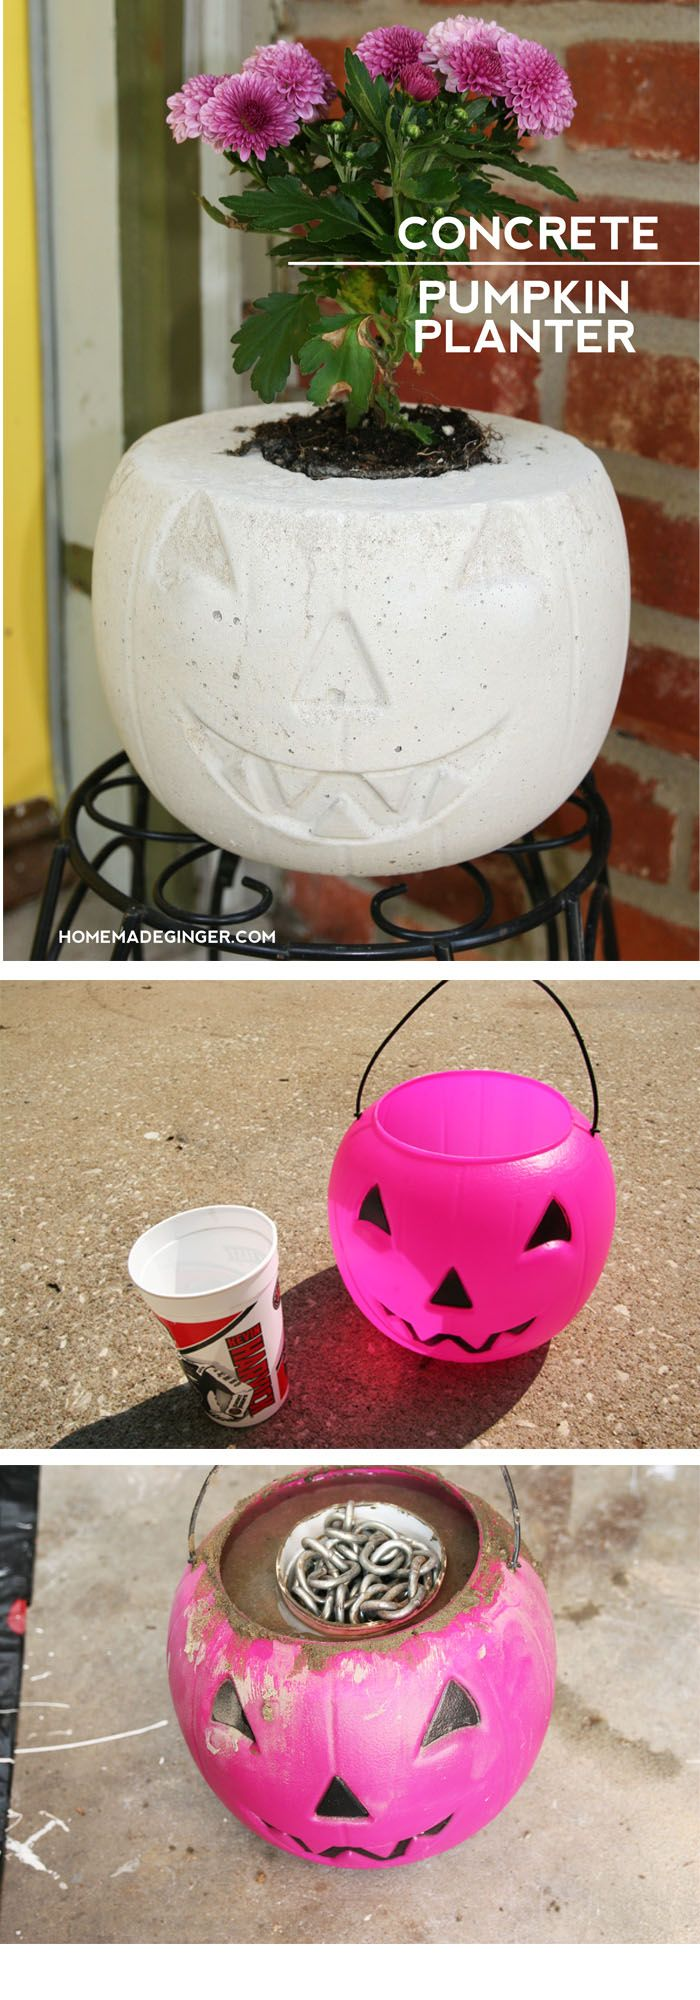 Make a concrete planter out of an old plastic jack o'lantern. The cutest way to display some mums for the front porch!